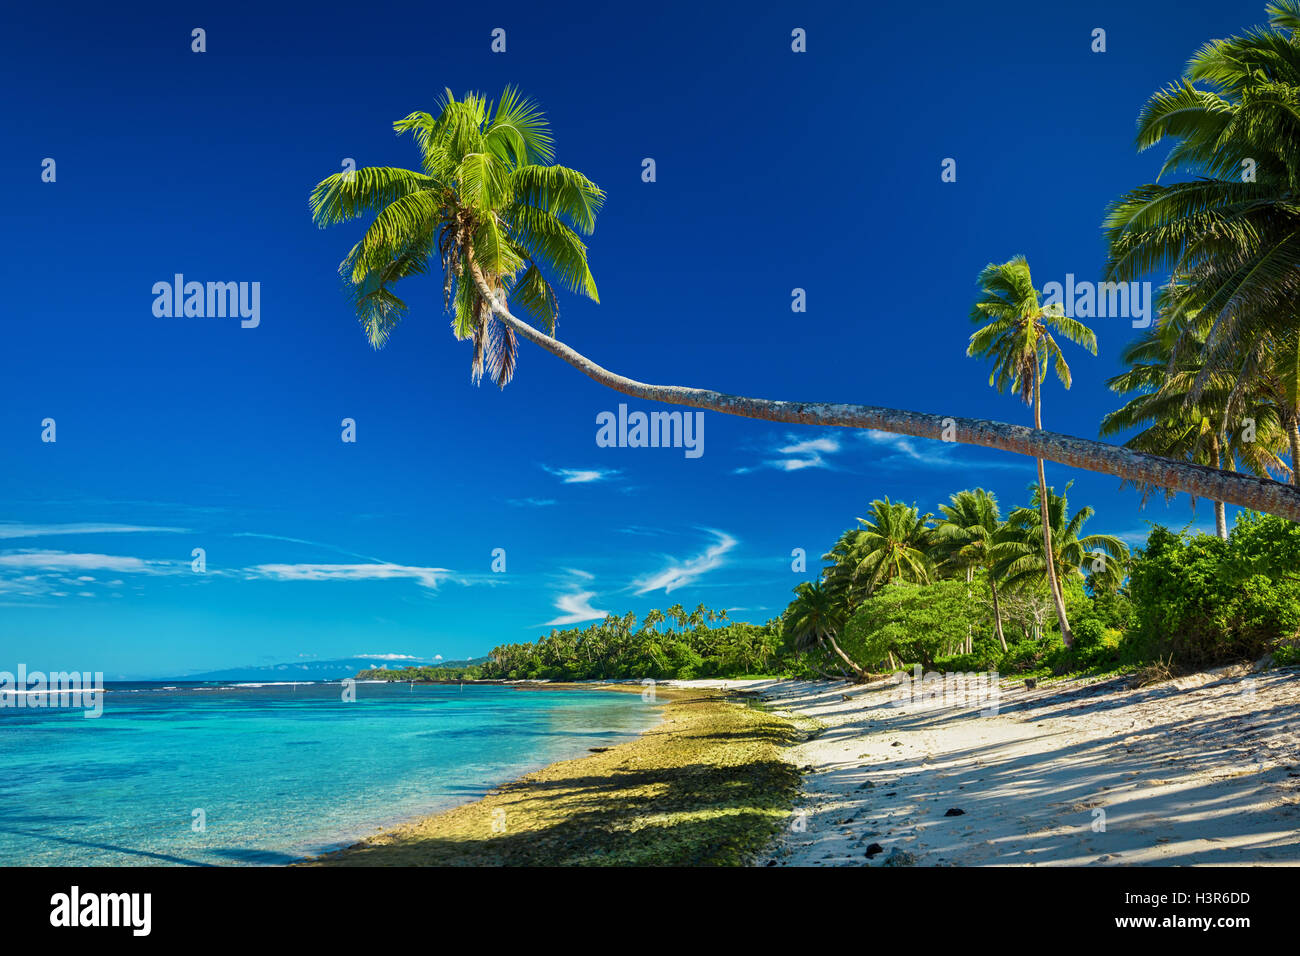 Tropical beach on south side of Samoa Island with many palm trees - Stock Image